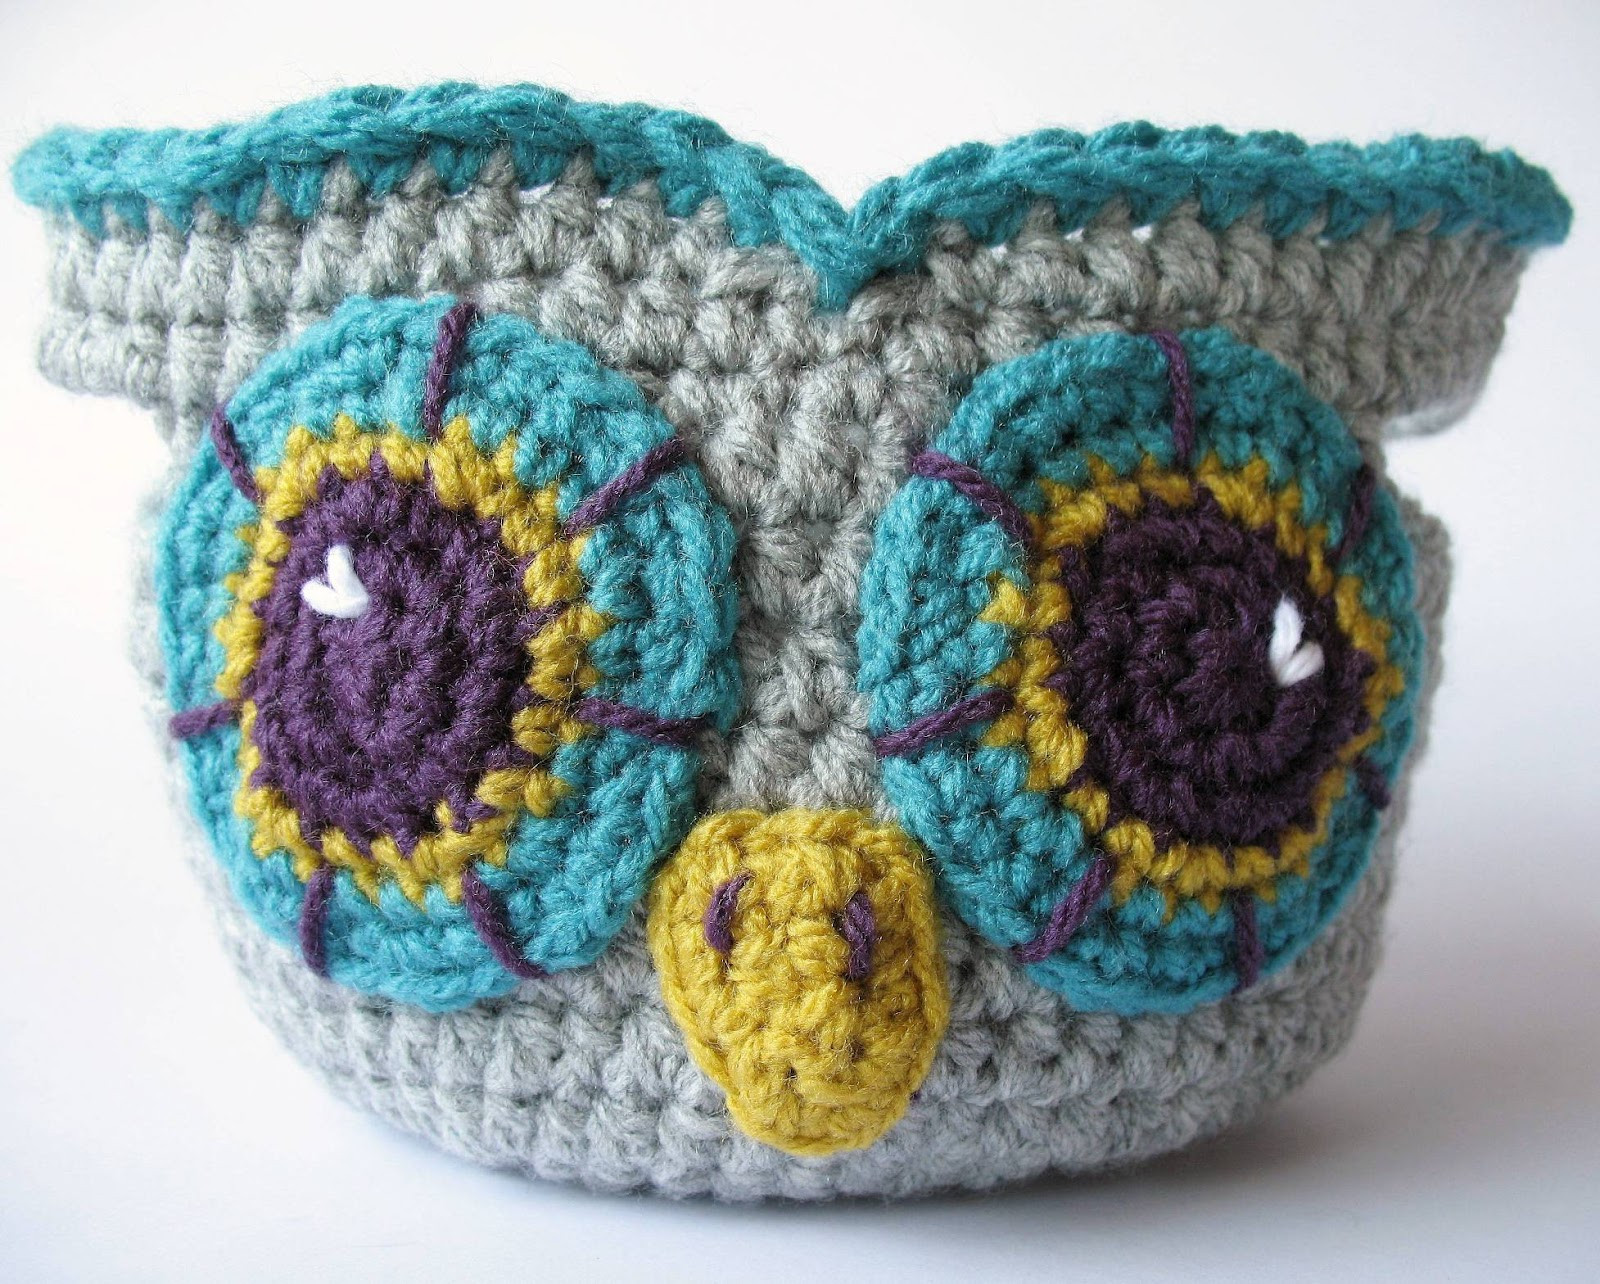 Best Of Eclectic Me Crochet Owl Basket Crochet Owl Basket Of Brilliant 47 Photos Crochet Owl Basket